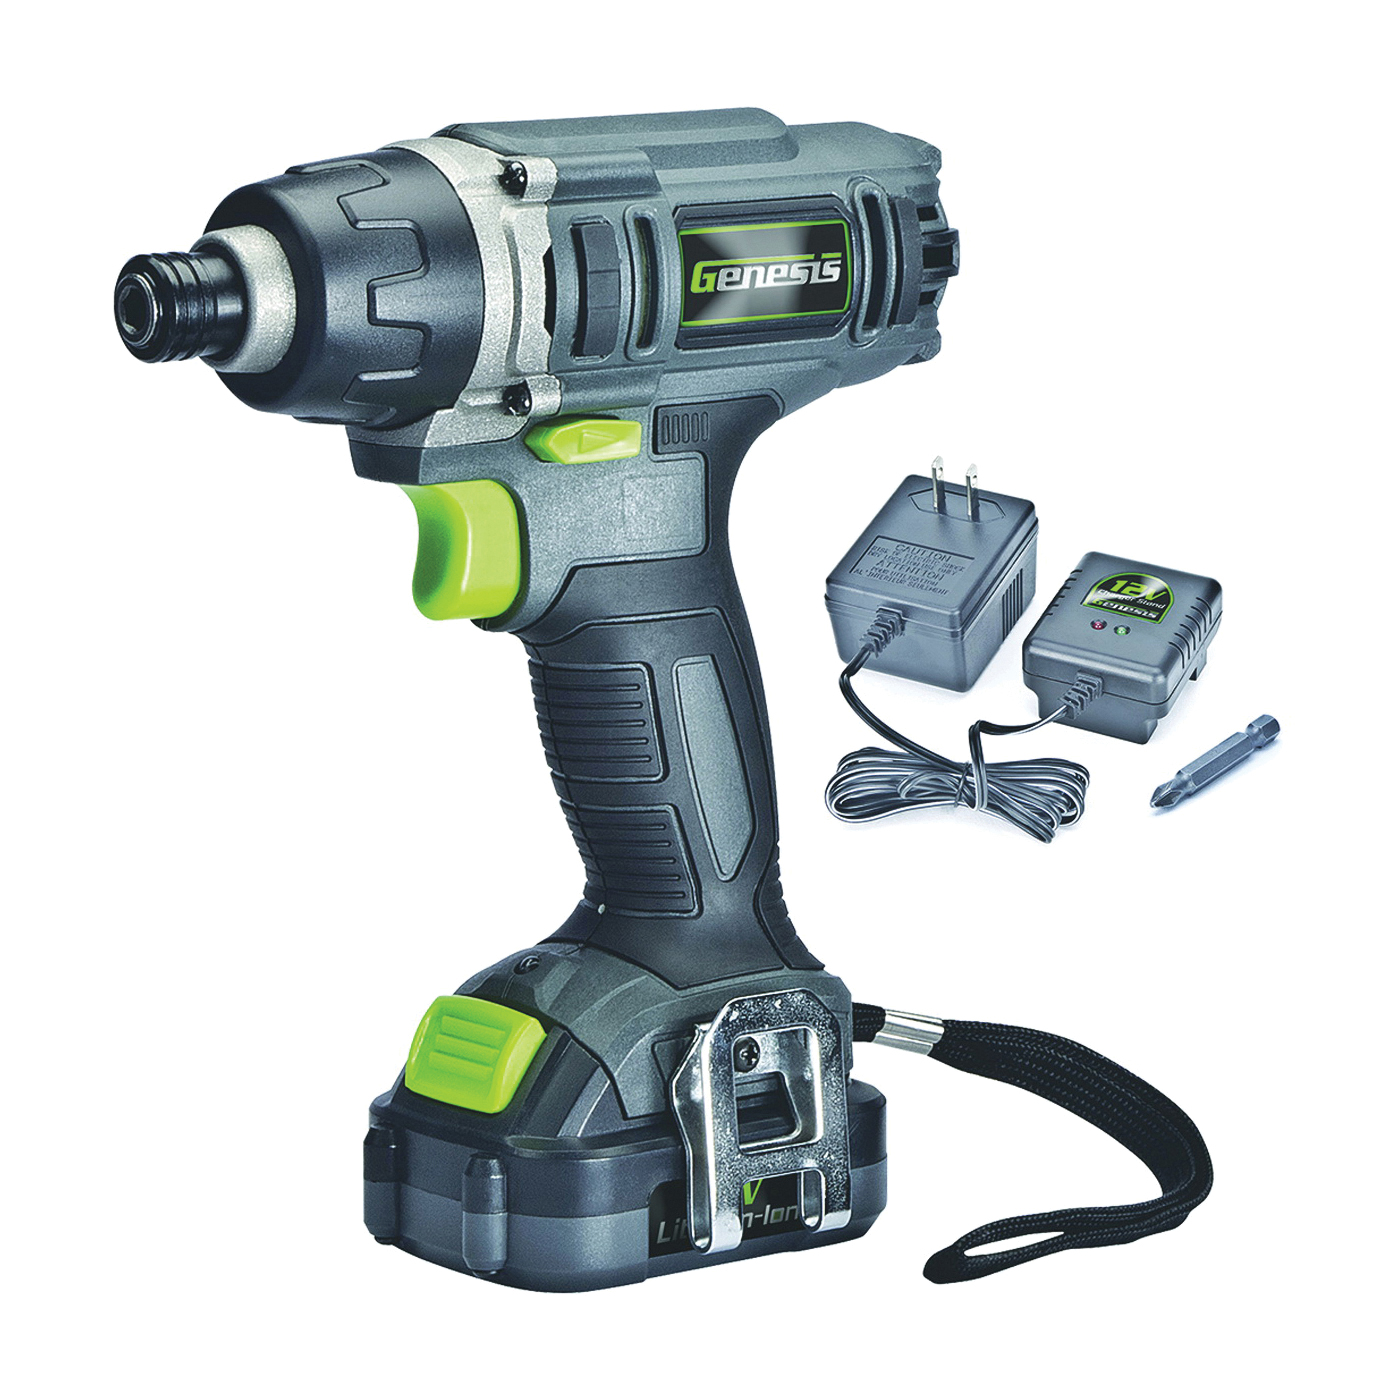 Picture of Genesis GLID12B Impact Driver, Kit, 12 V Battery, 1/4 in Drive, Hex Drive, 3000 ipm IPM, 2300 rpm Speed